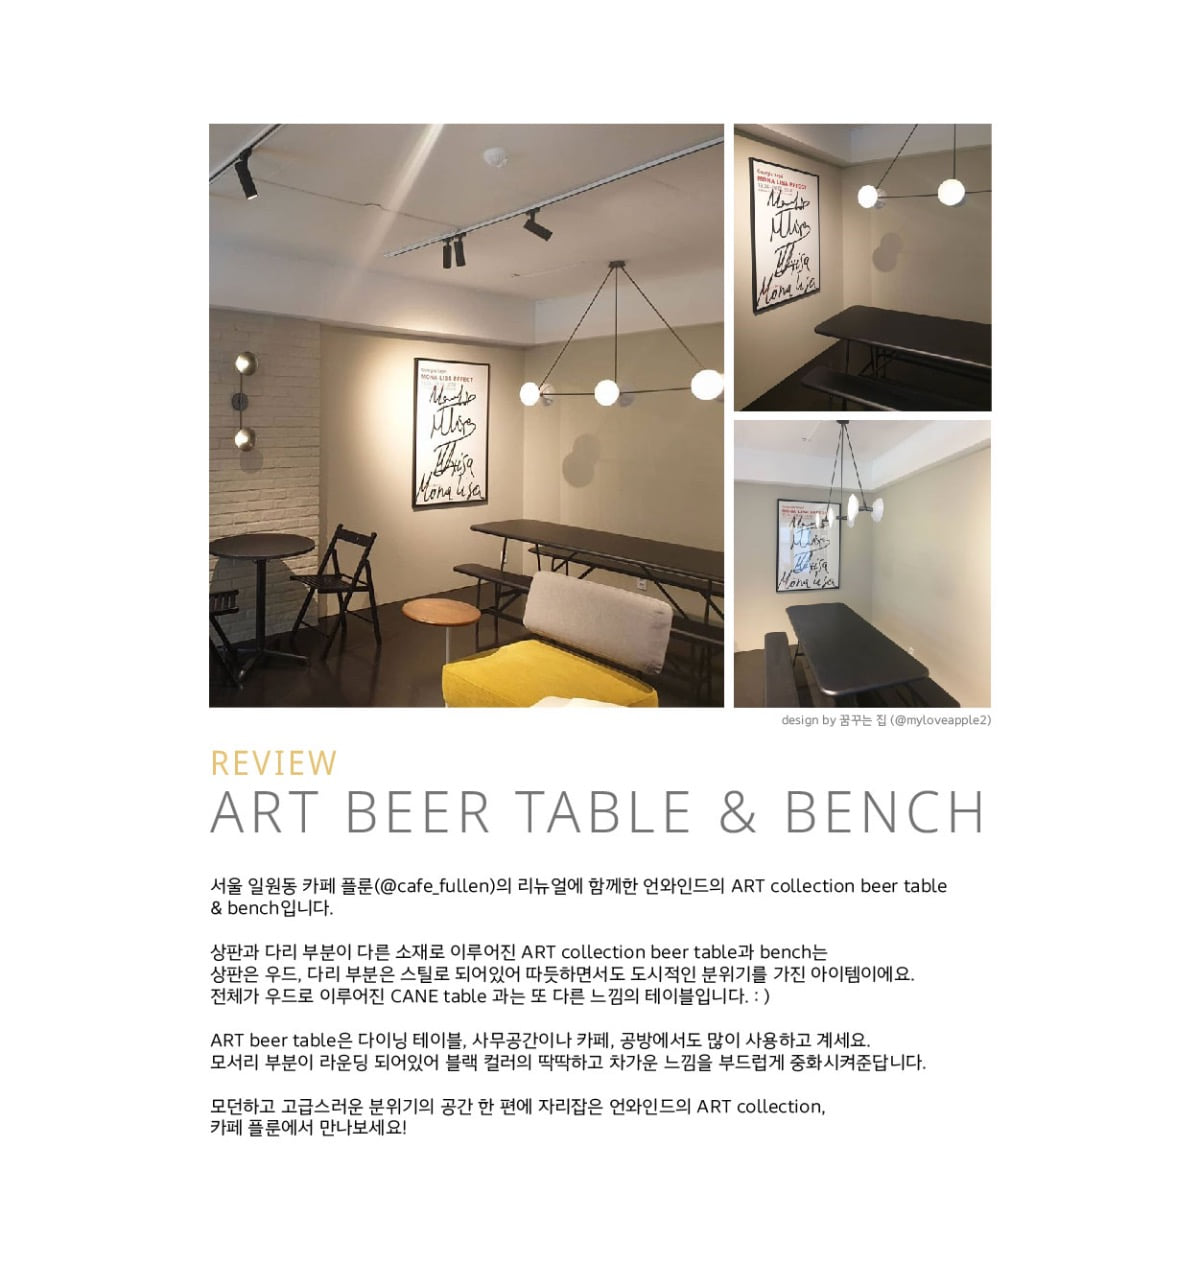 ART beer table & bench